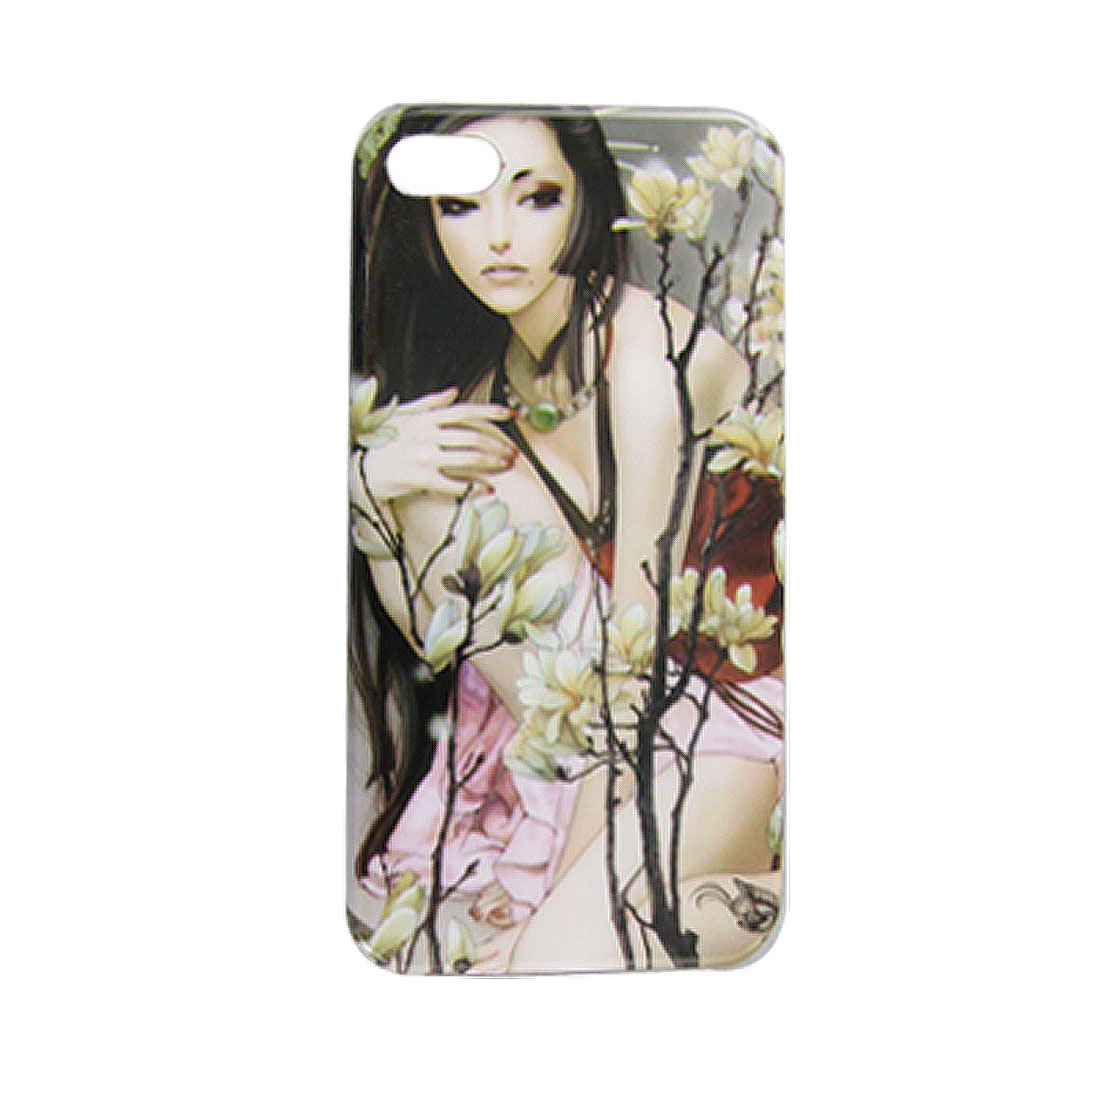 Colorful Sexy Lady Floral Decor IMD Protective Hard Back Case Shell for iPhone 4S 4GS